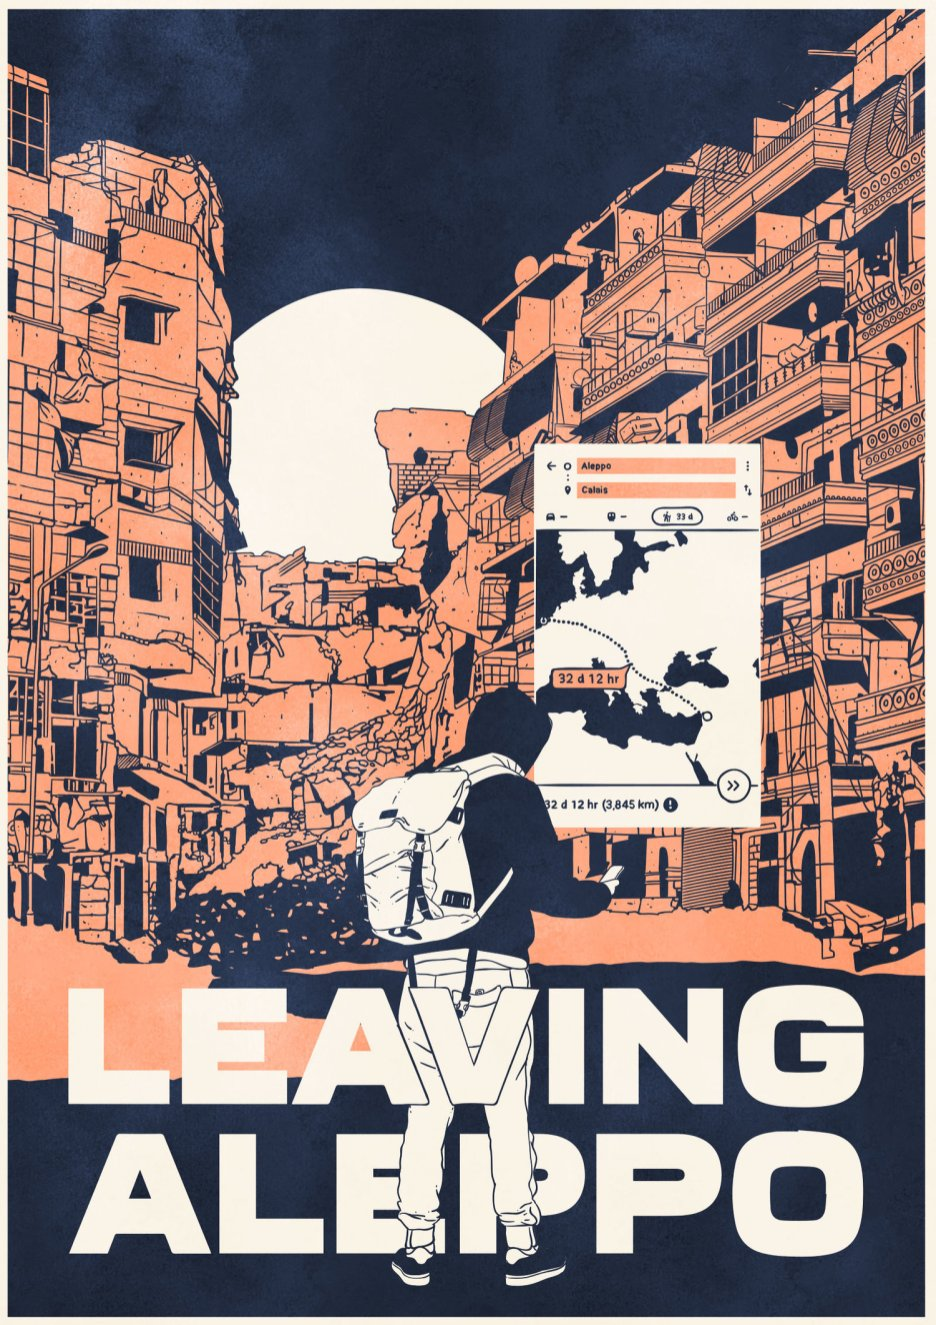 Joey Prytherch - Leaving Aleppo